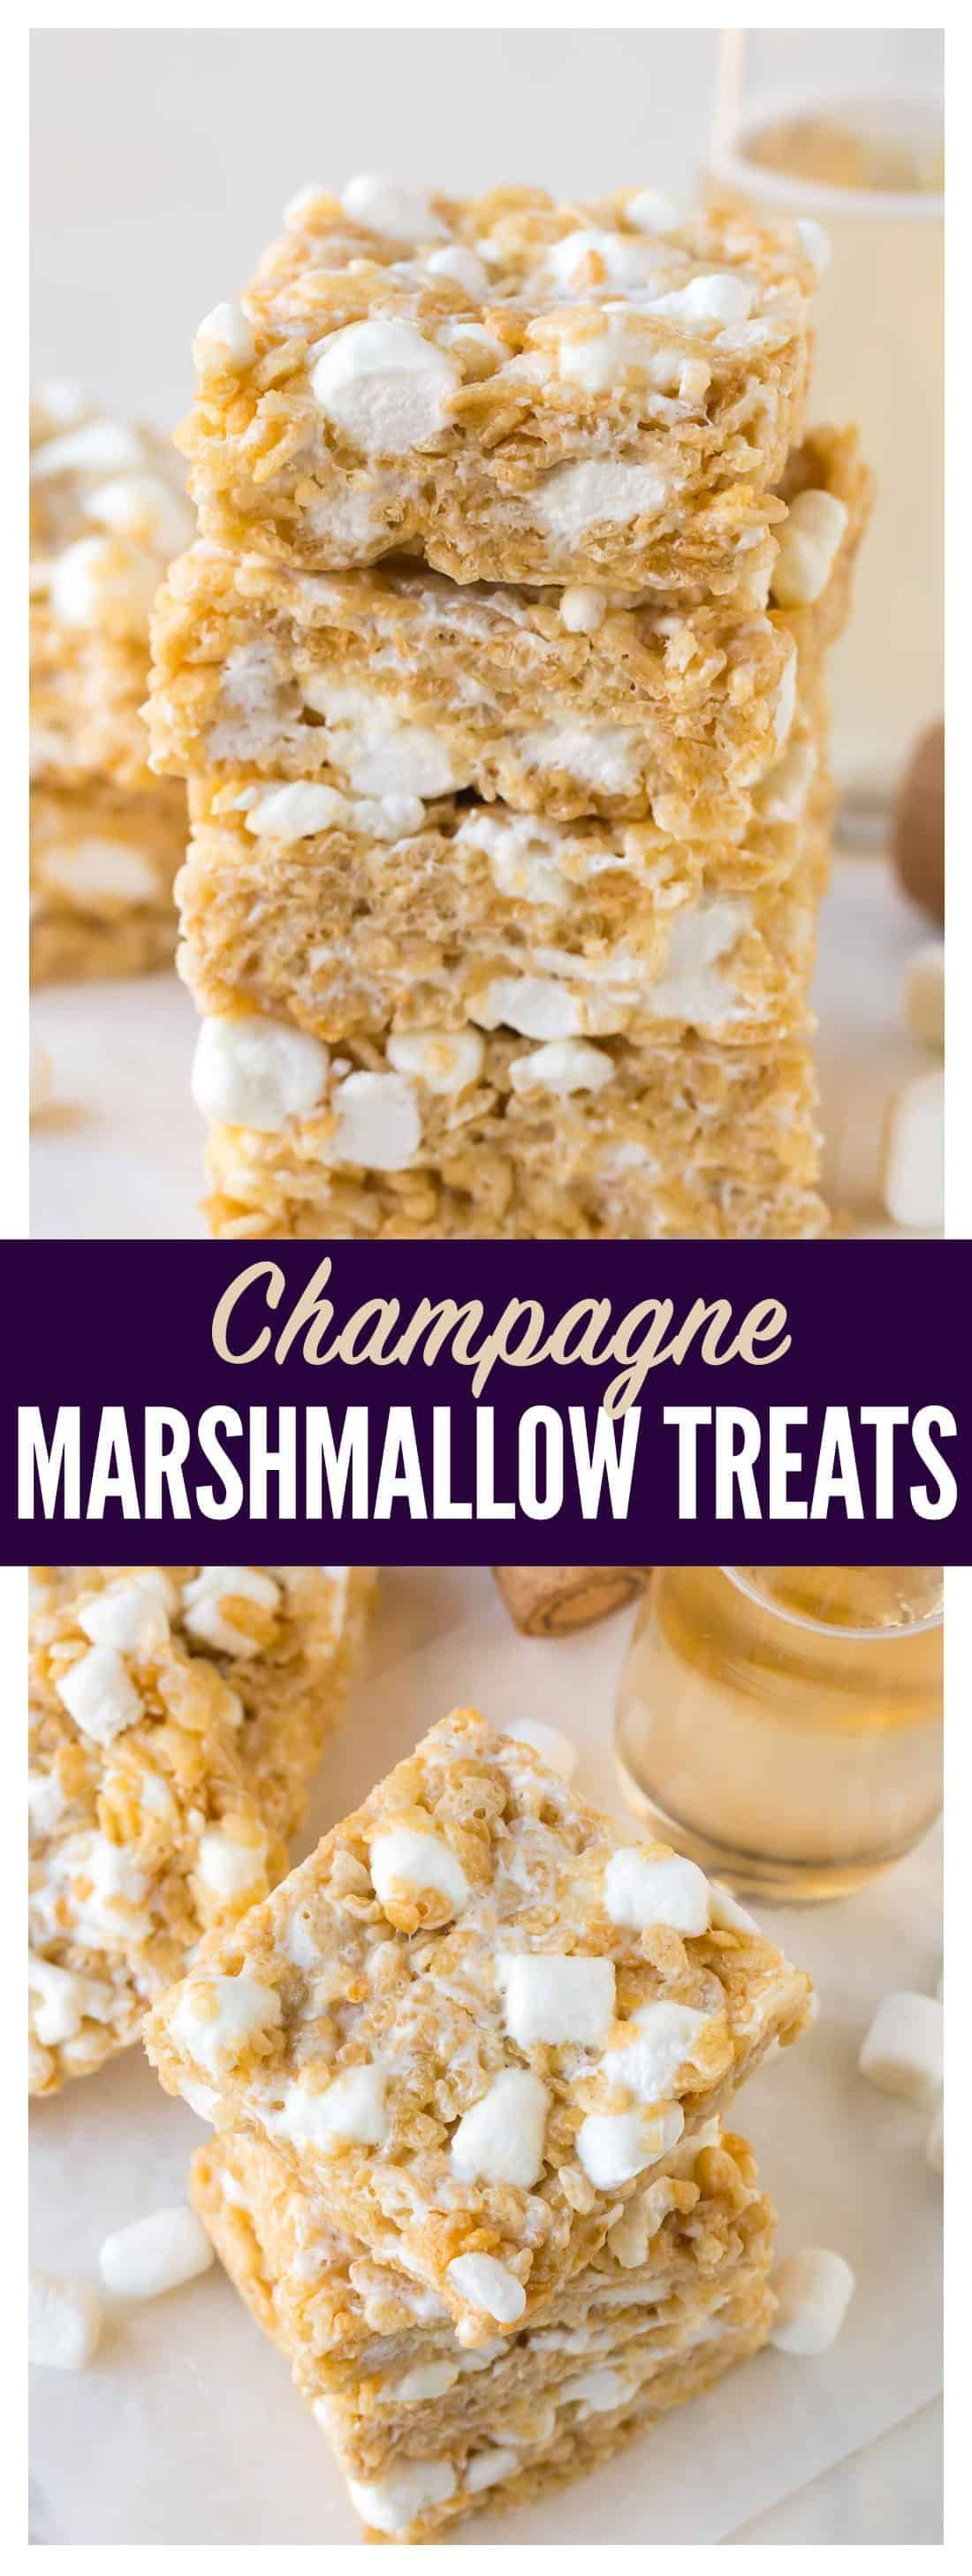 Soft, ooey-gooey, BOOZY Marshmallow Rice Krispie Treats ...